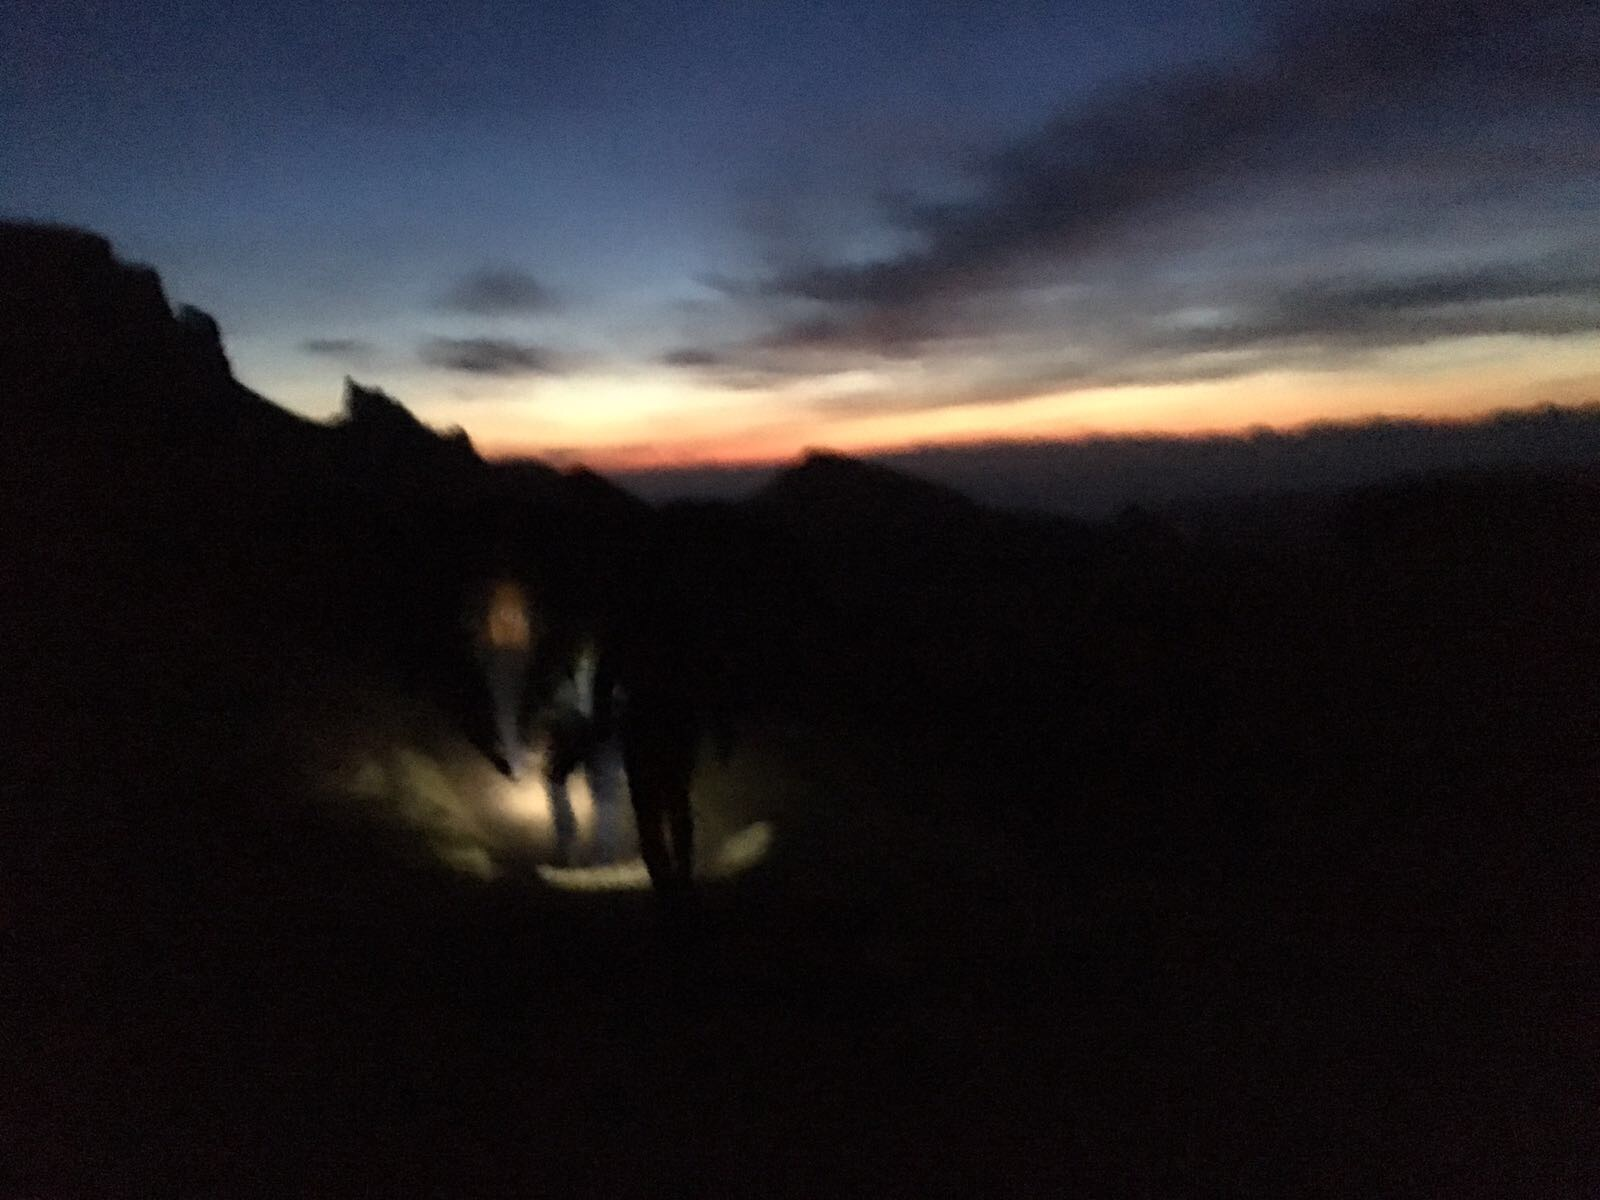 Image 2: Dawn on the Quiraing